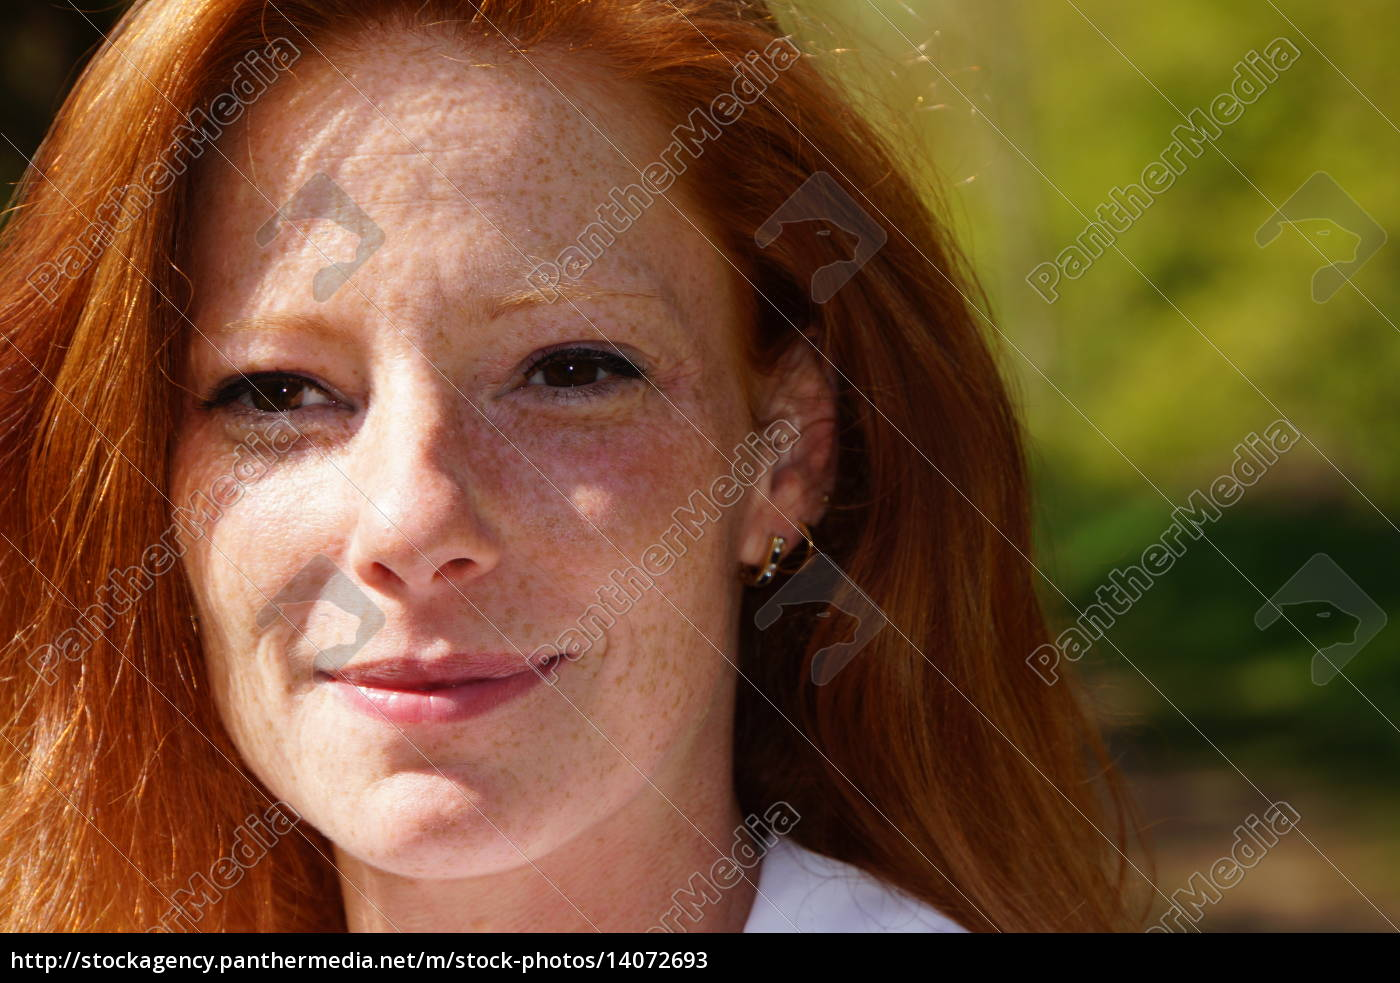 portrait, of, a, young, red-haired, woman - 14072693